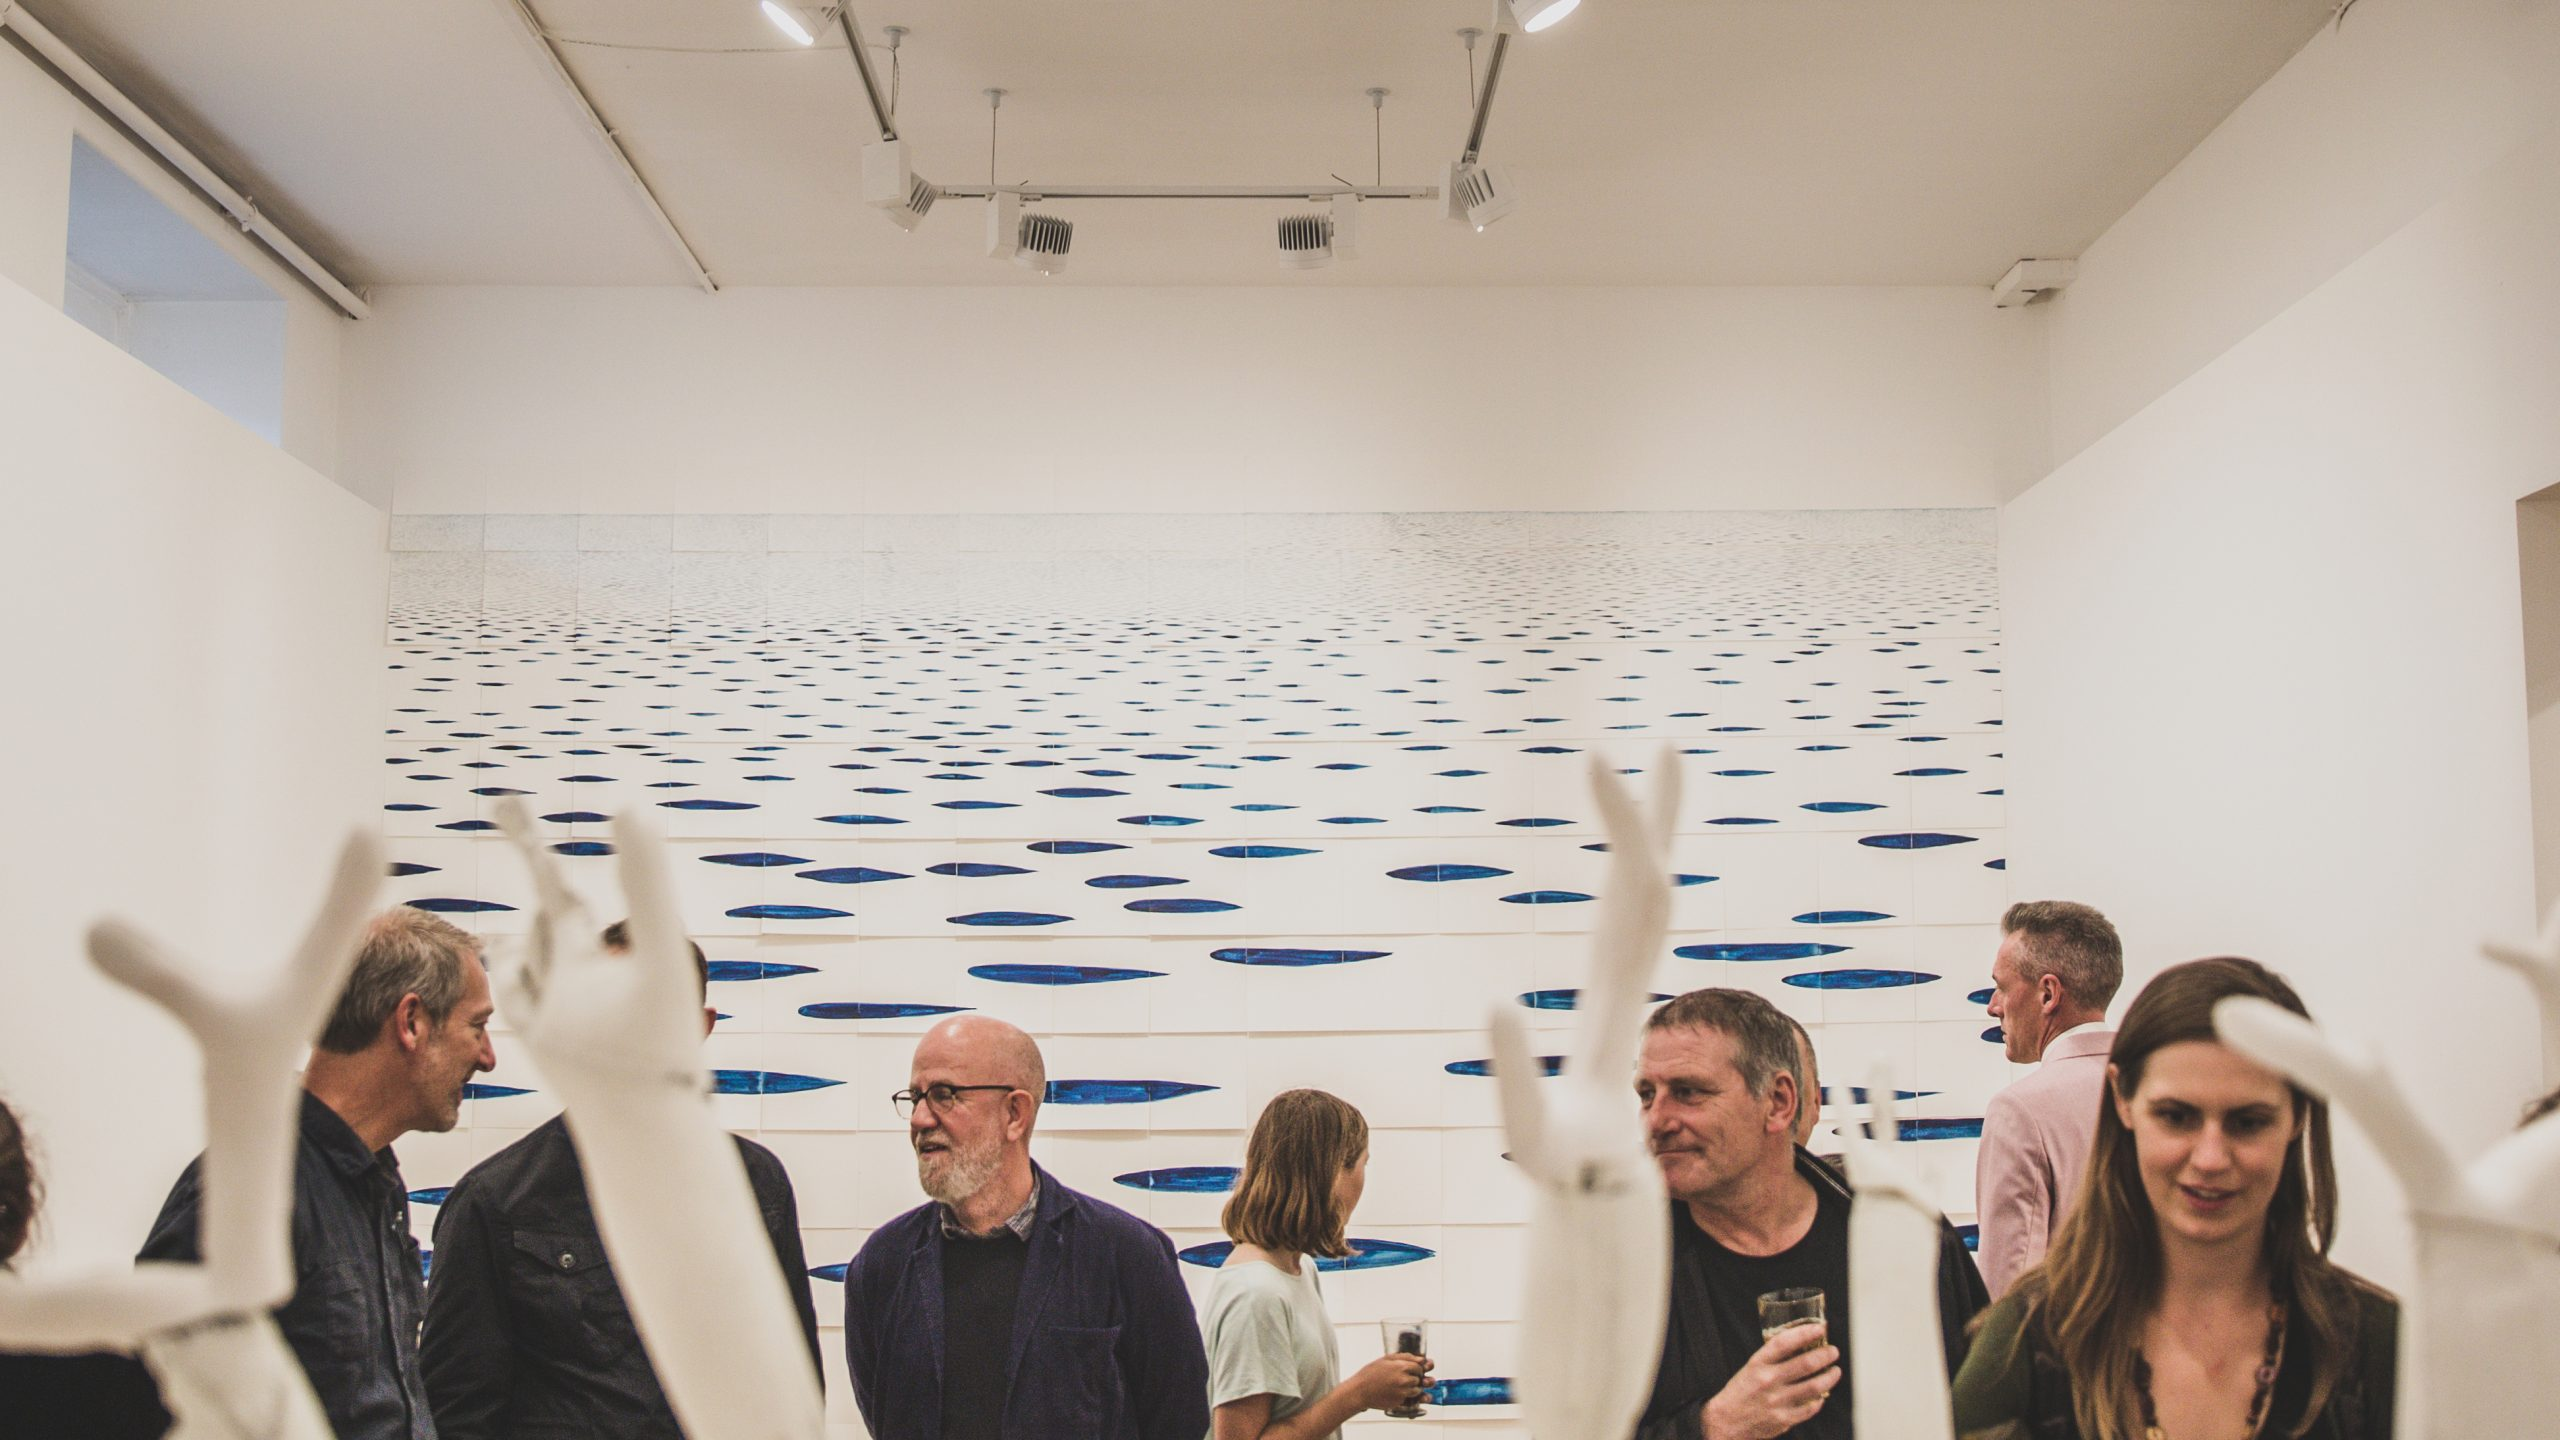 A photograph of a private view gallery event